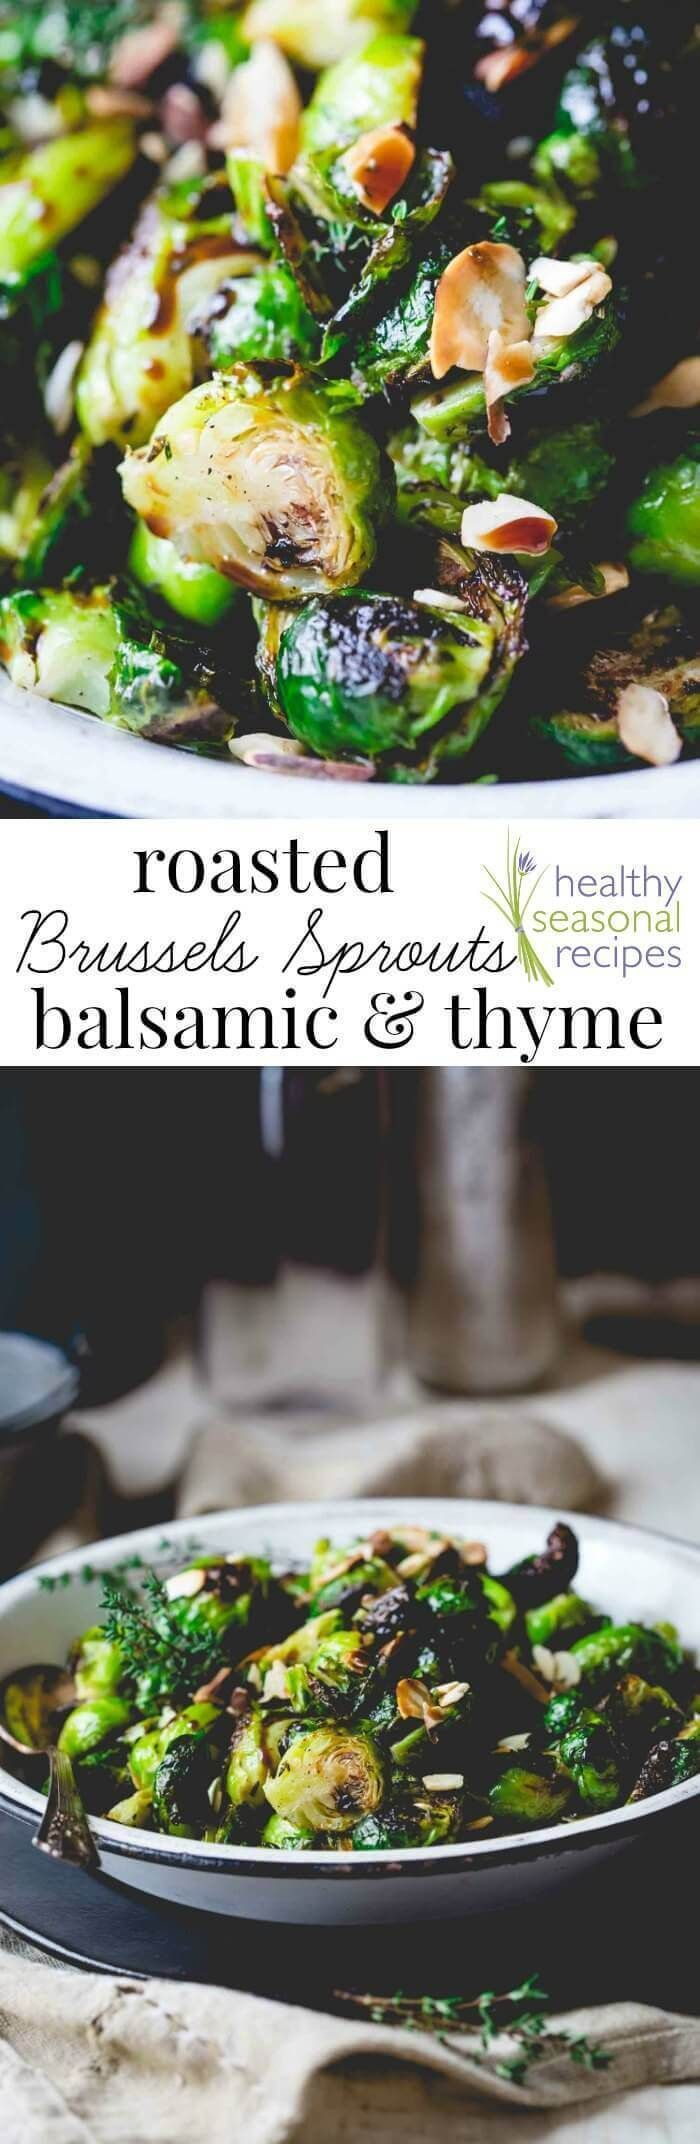 roasted brussels sprouts with balsamic and thyme www.healthyseason...  - Low carb -